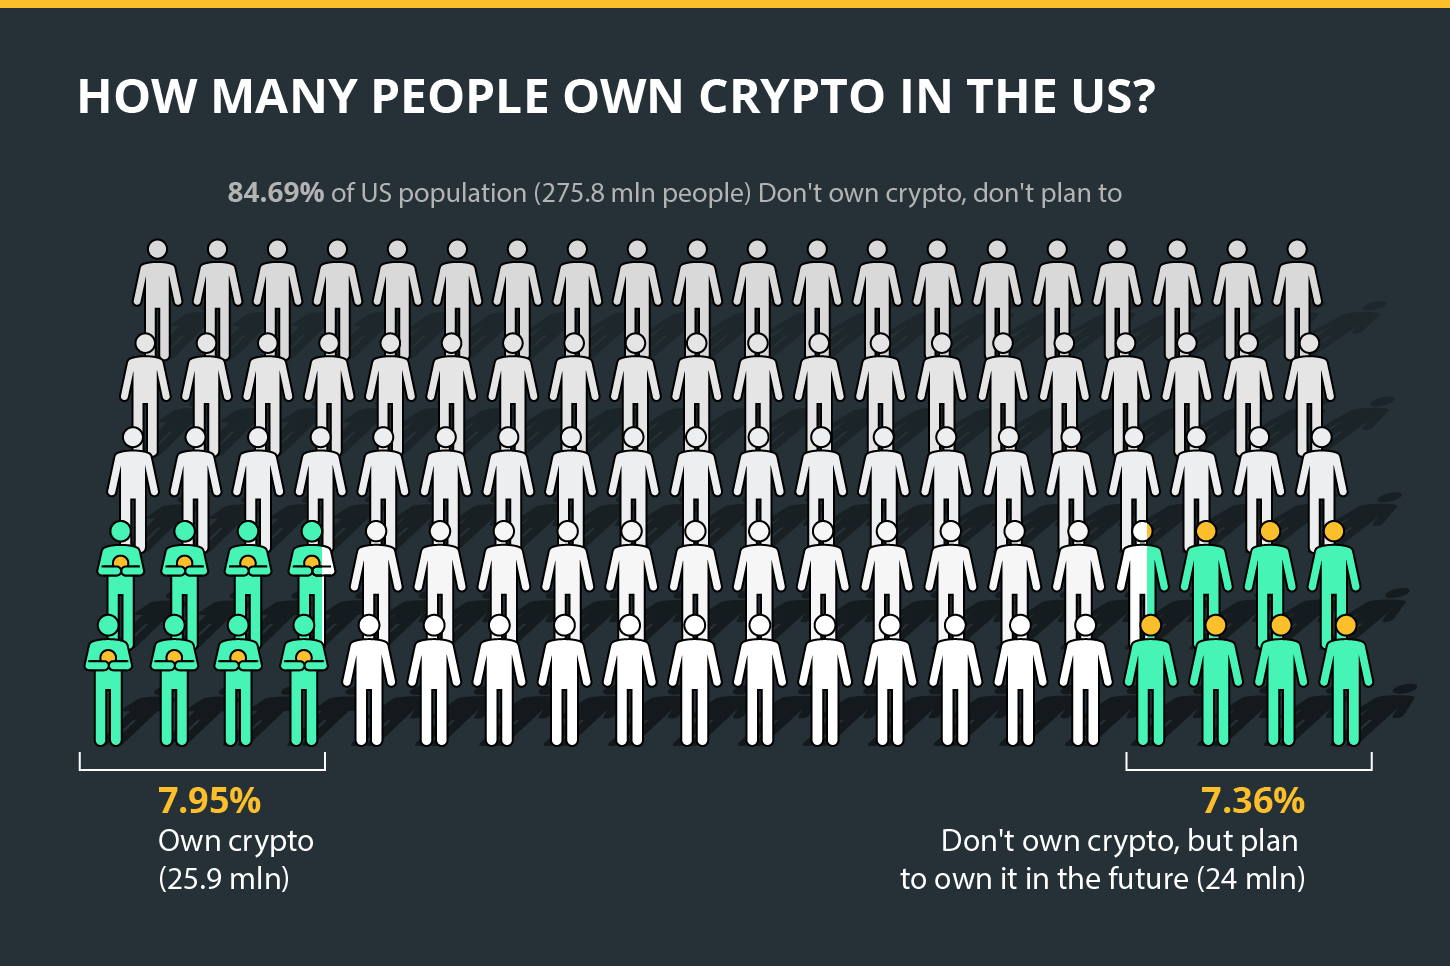 How many people own crypto in the US?